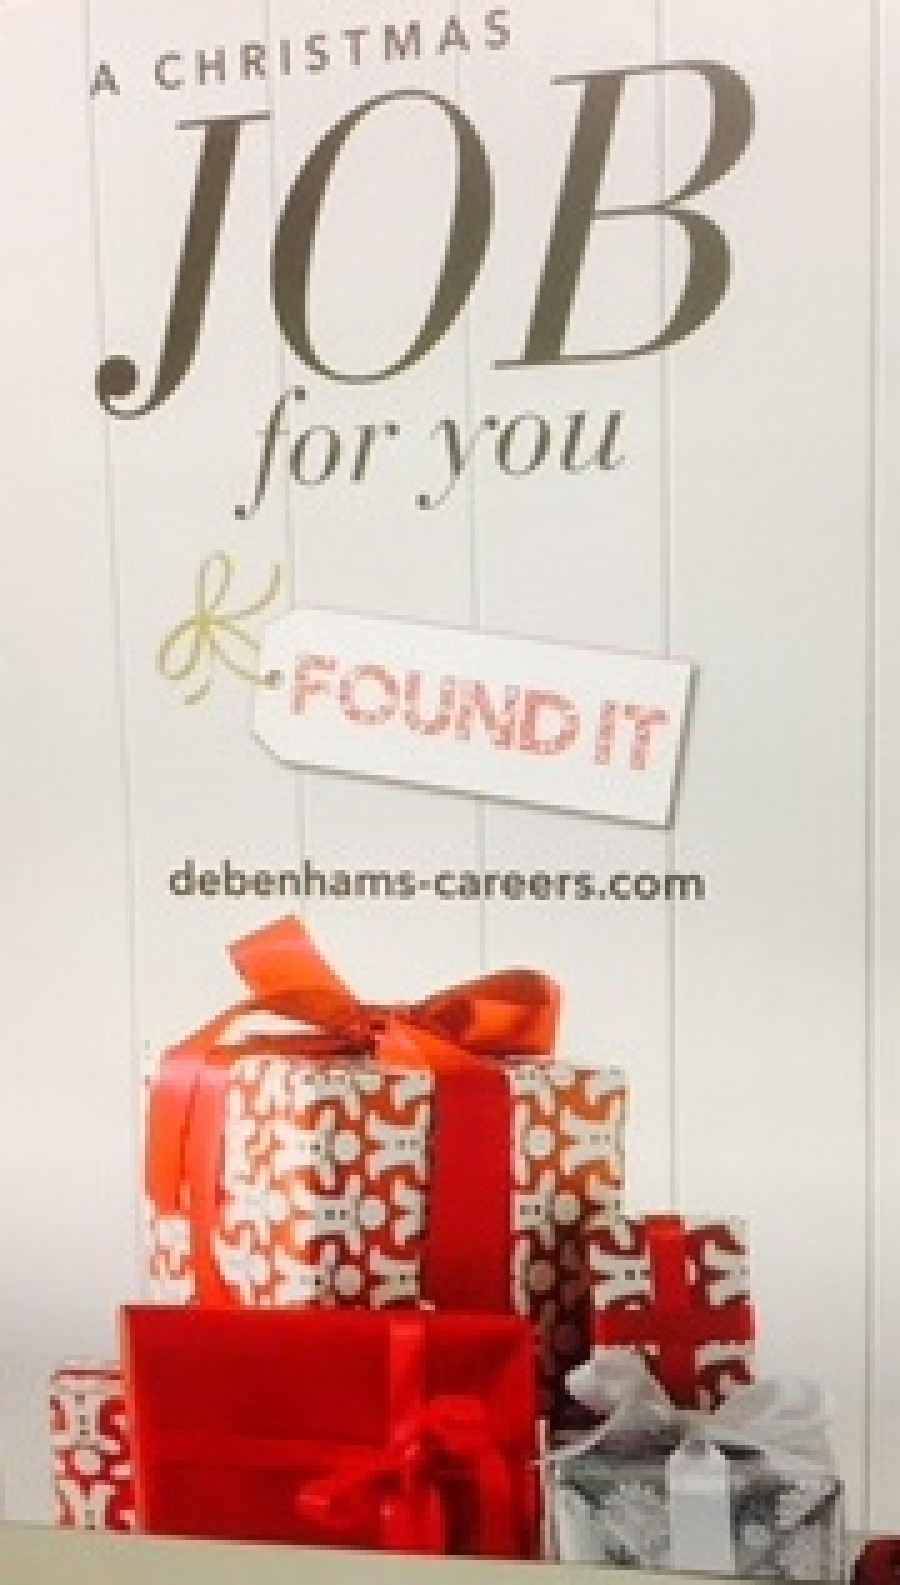 Apply now for Part time Christmas jobs at Debenhams